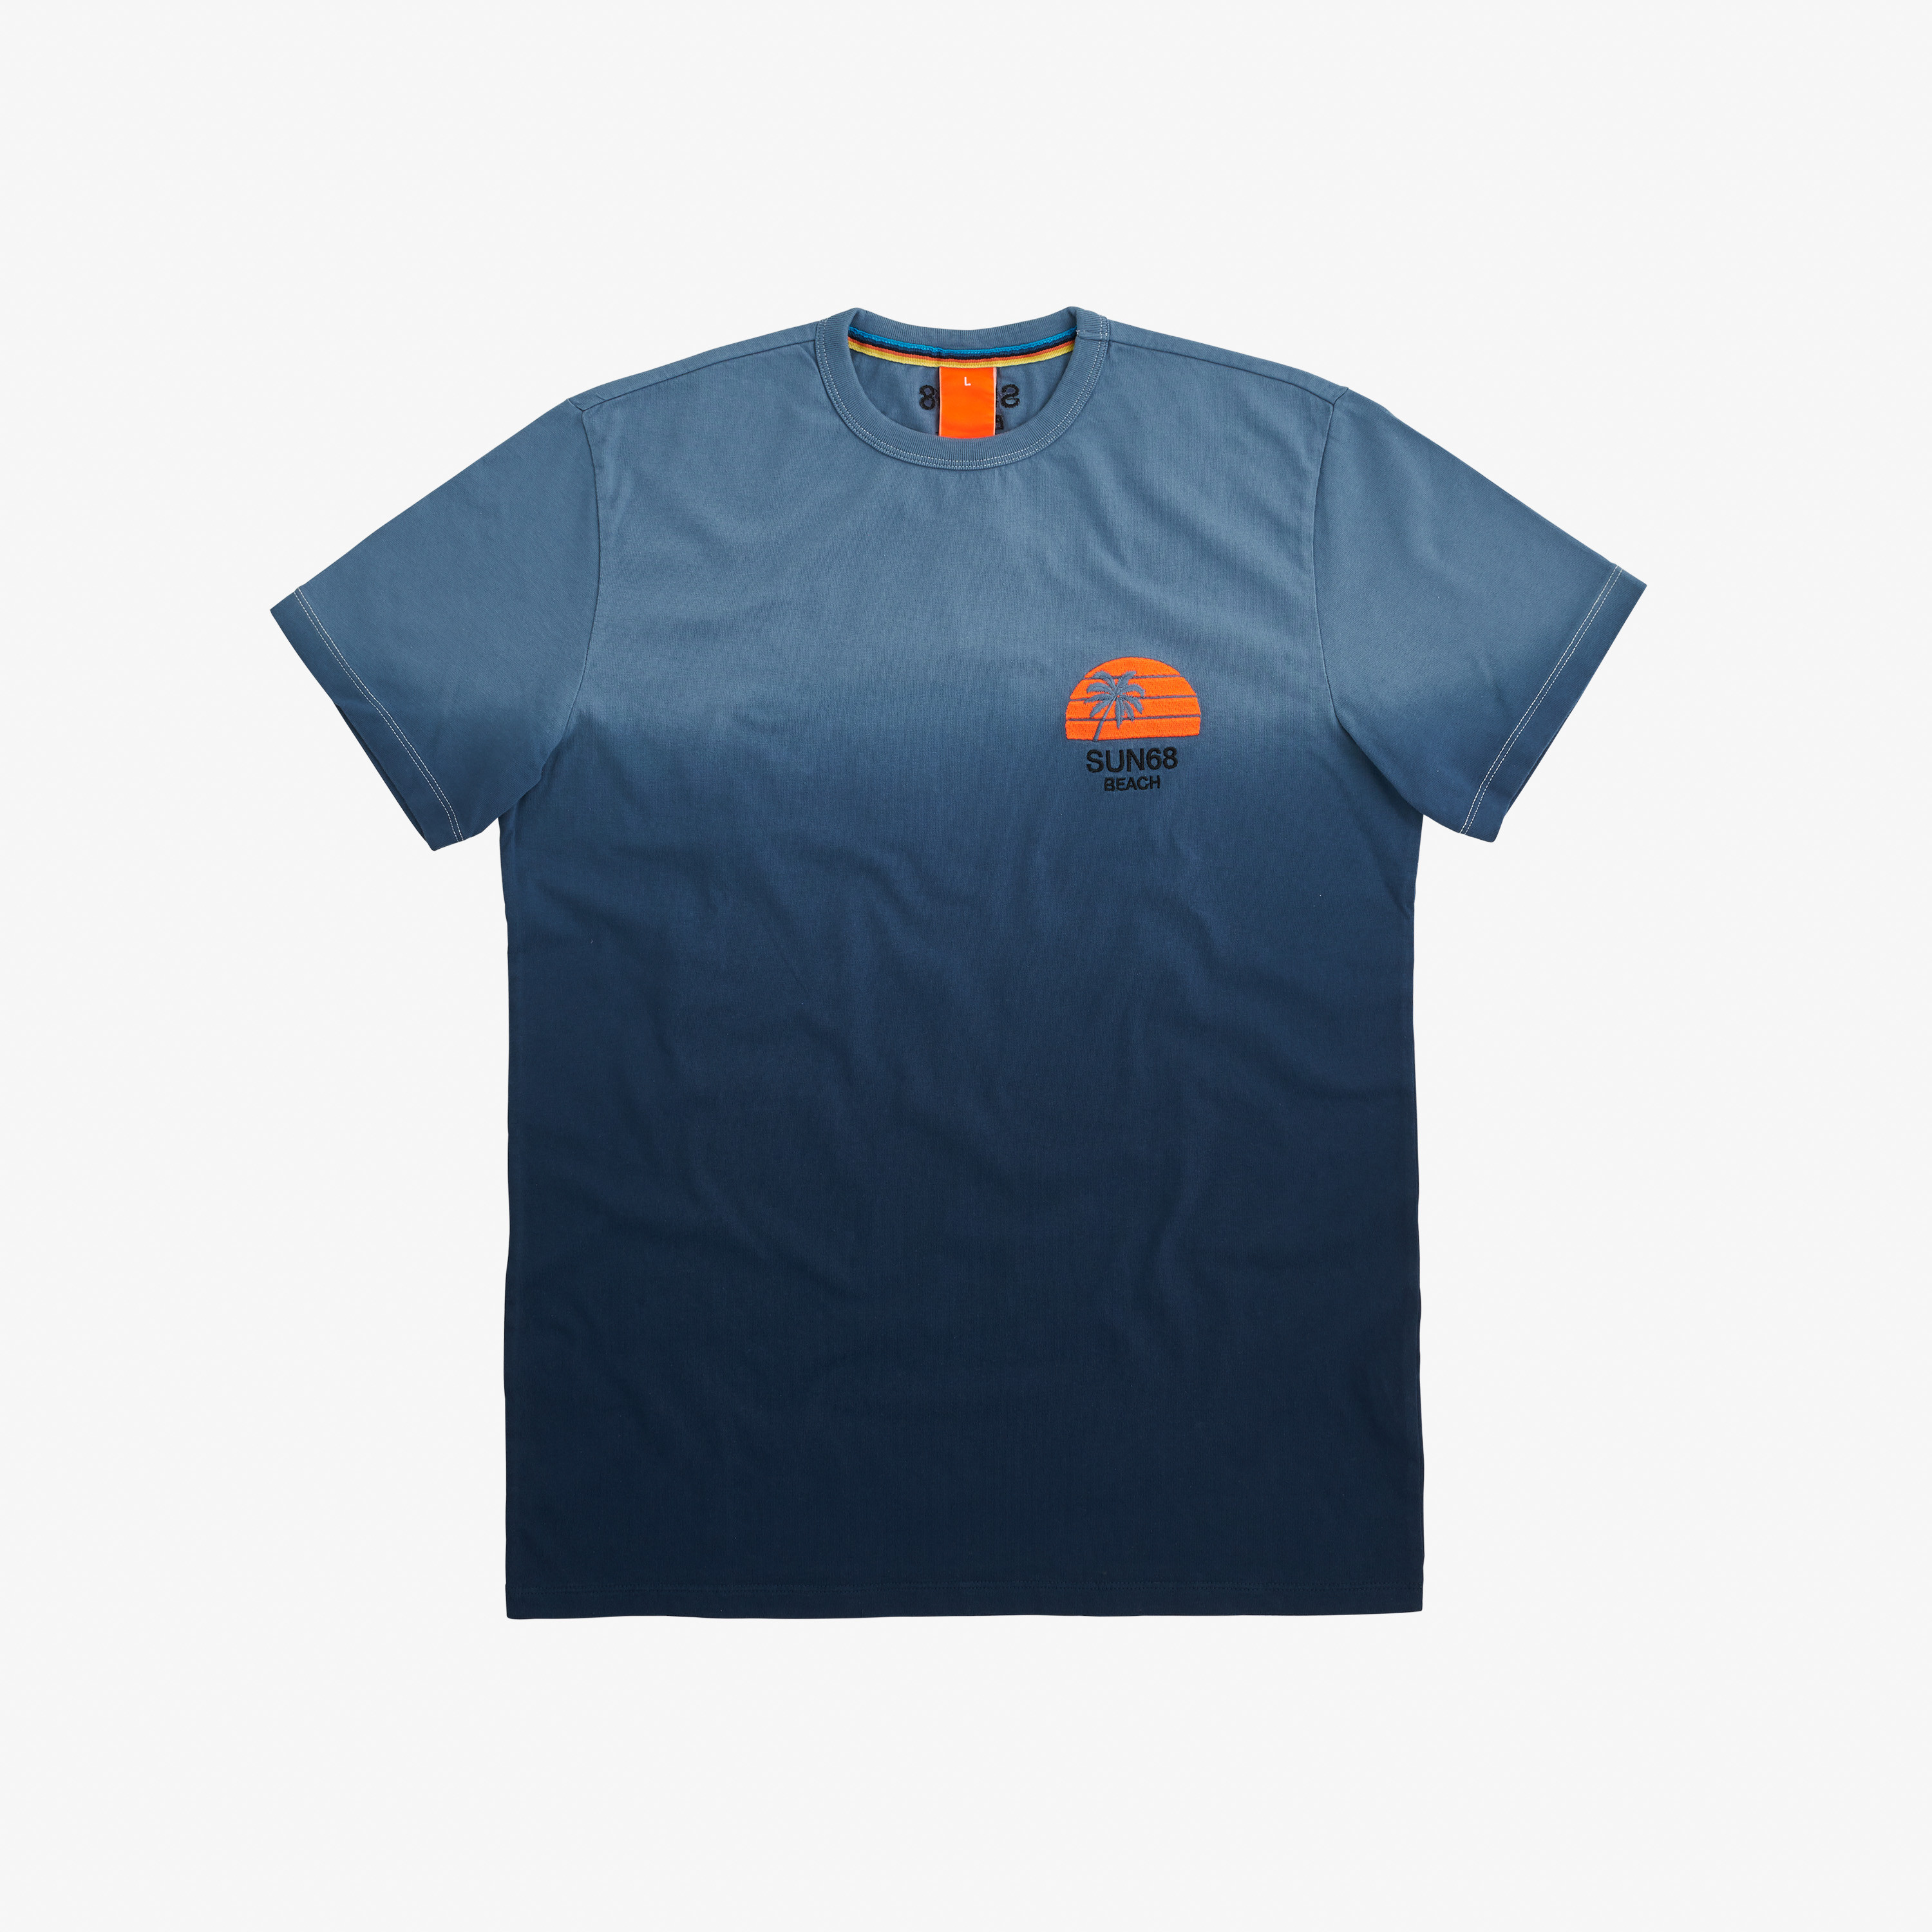 T-SHIRT HANG DYE NAVY BLUE